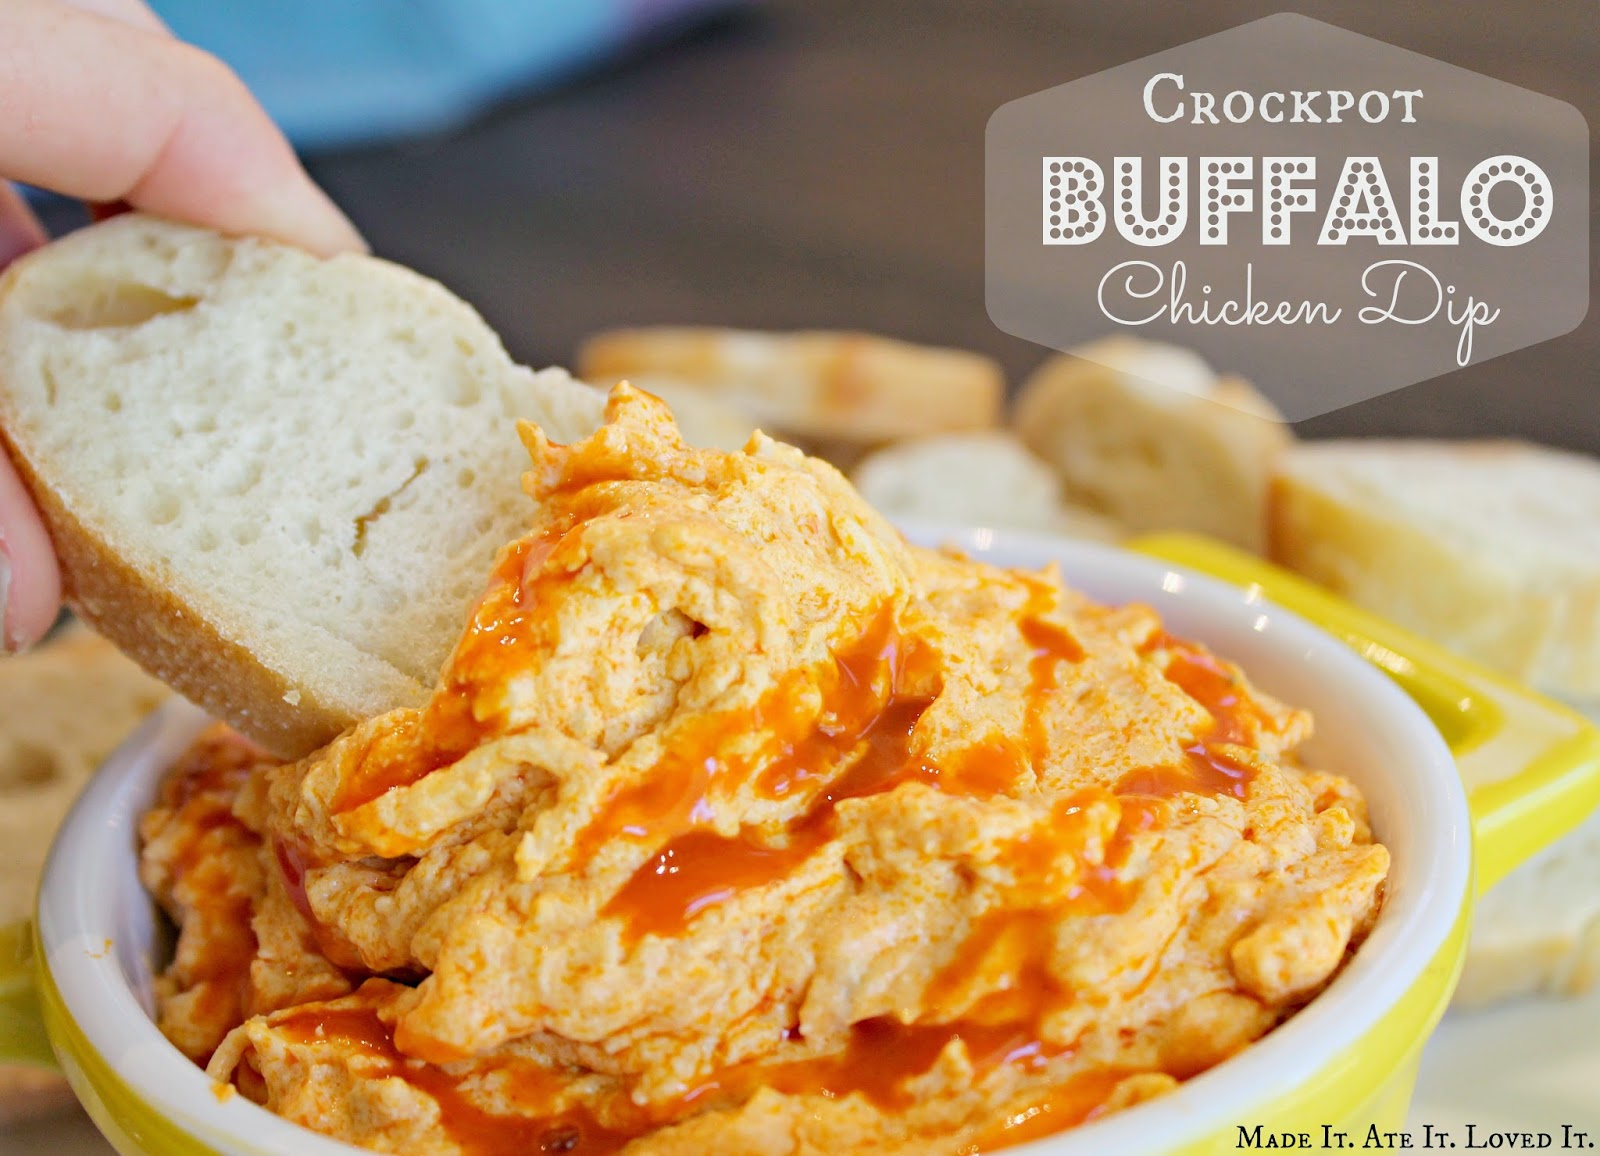 Made It. Ate It. Loved It.: Crockpot Buffalo Chicken Dip